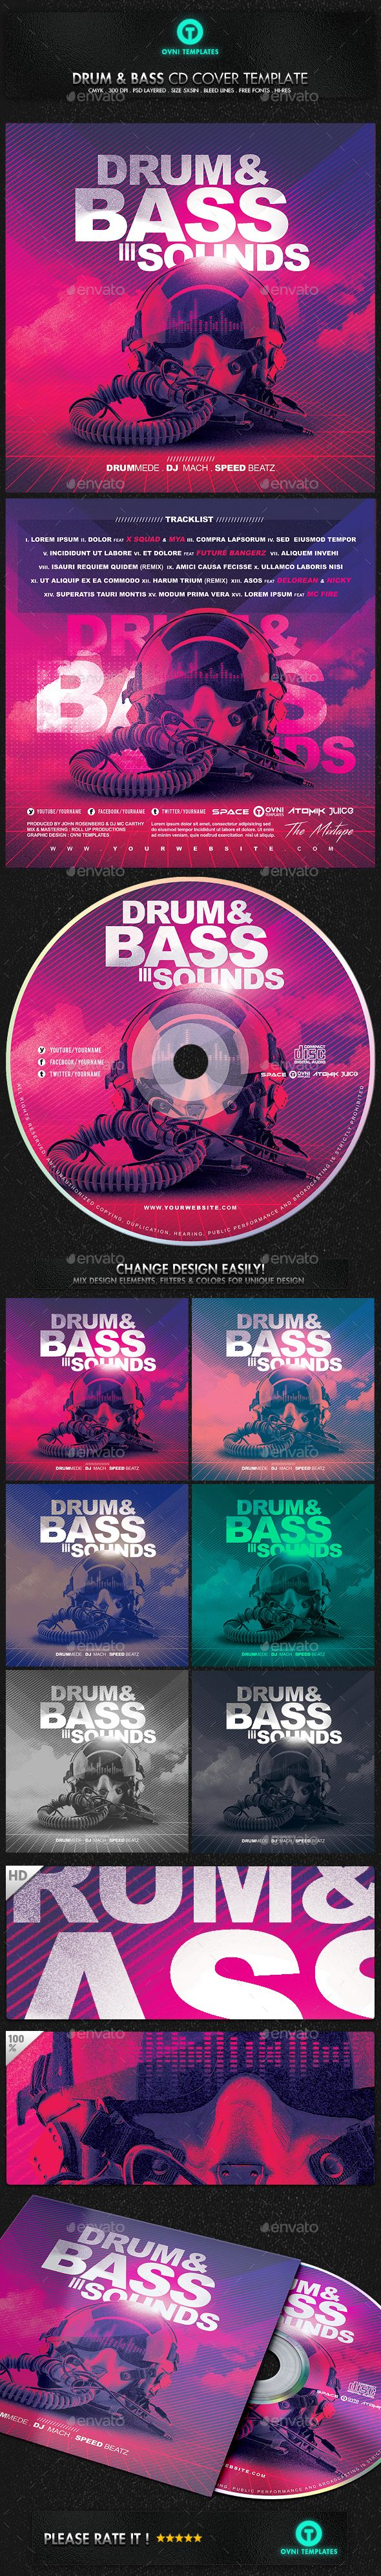 Drum Bass Dubstep Electro CD Cover Template PSD. Download here: https://graphicriver.net/item/drum-bass-dubstep-electro-cd-cover-template/17120406?ref=ksioks